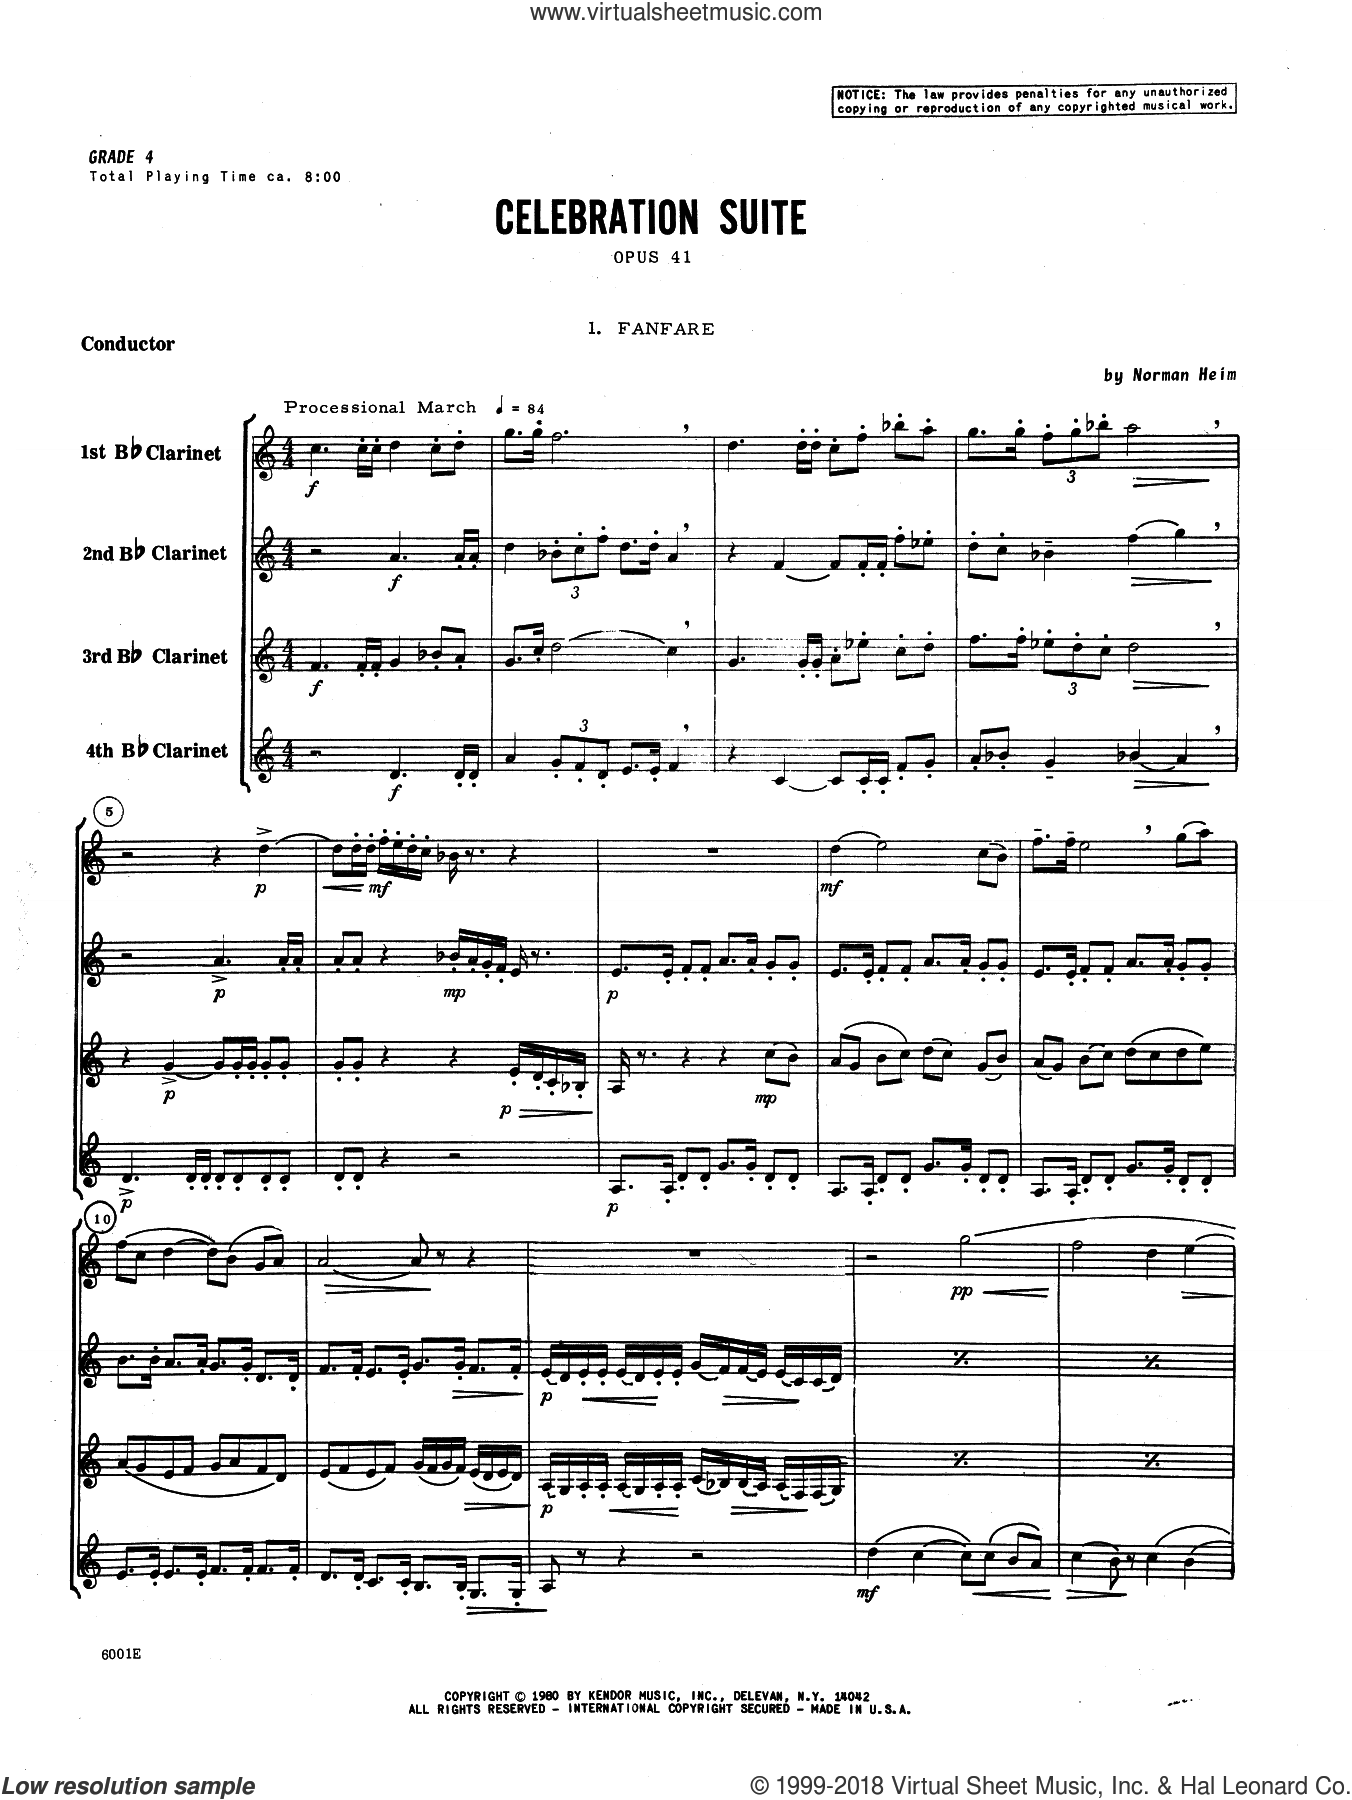 Celebration Suite (COMPLETE) sheet music for clarinet quartet by Norman Heim, classical score, intermediate skill level